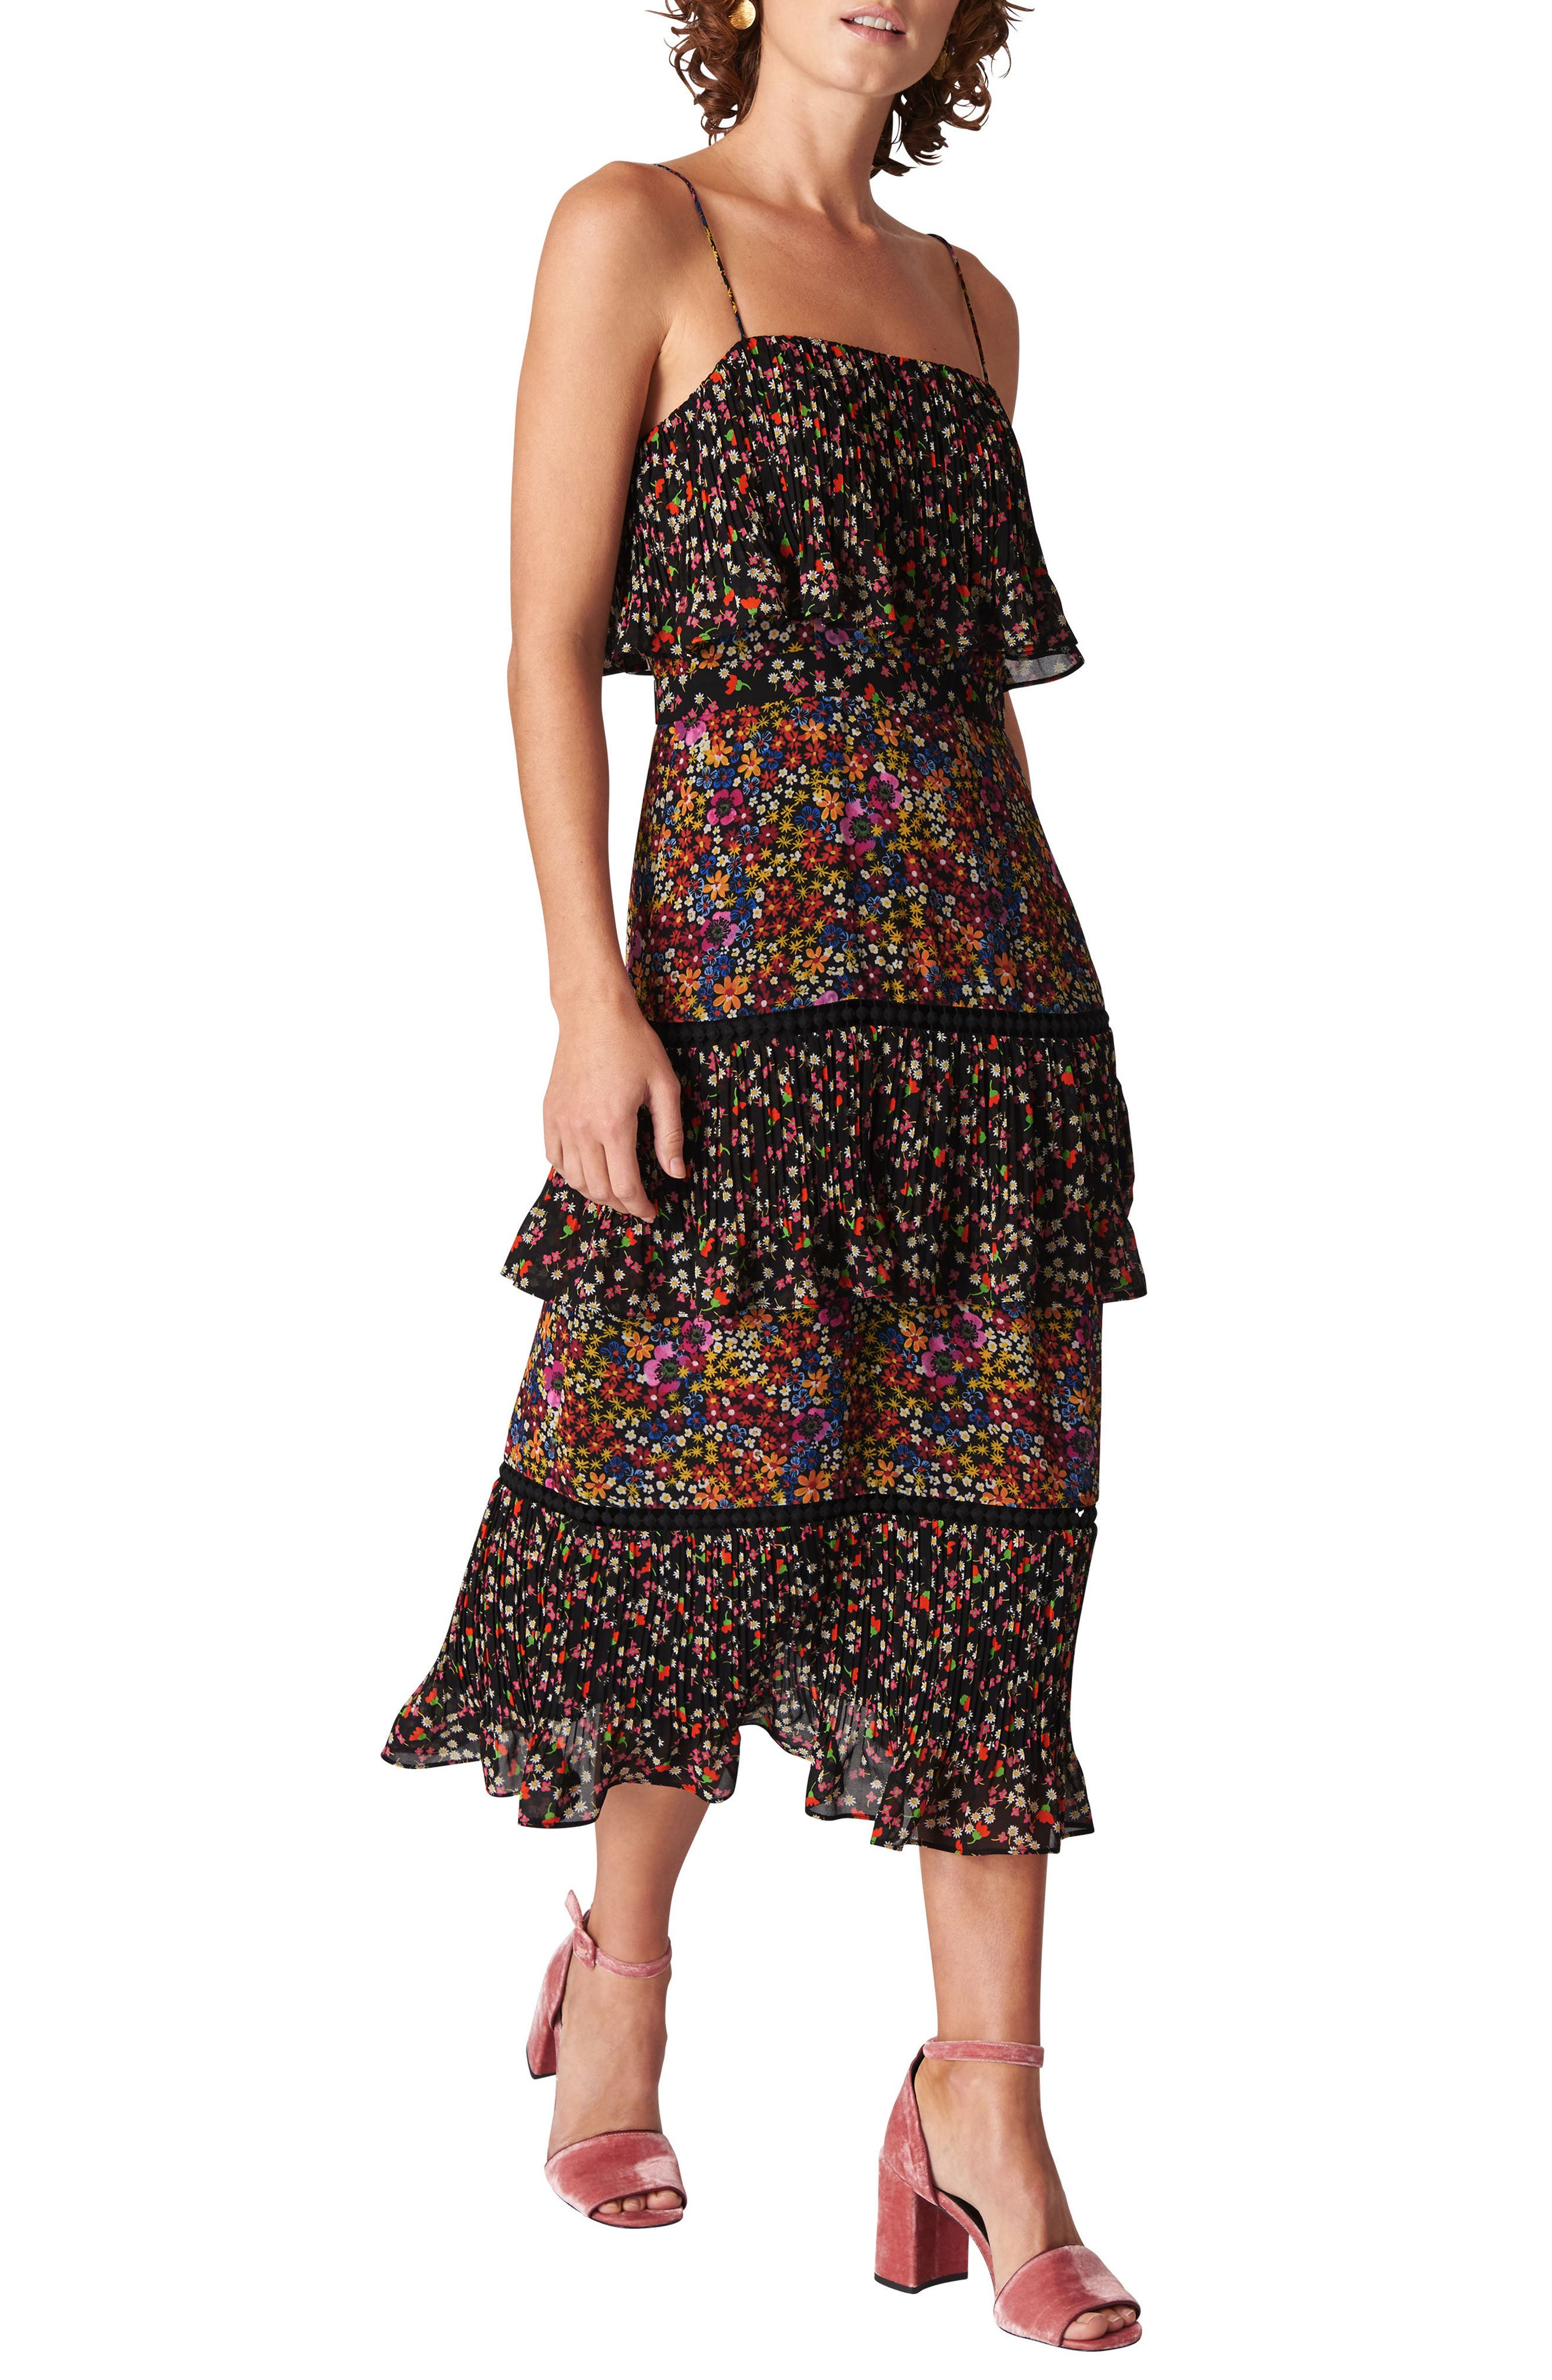 Skylar Peony Print Tiered Dress,                         Main,                         color, Black/ Multi